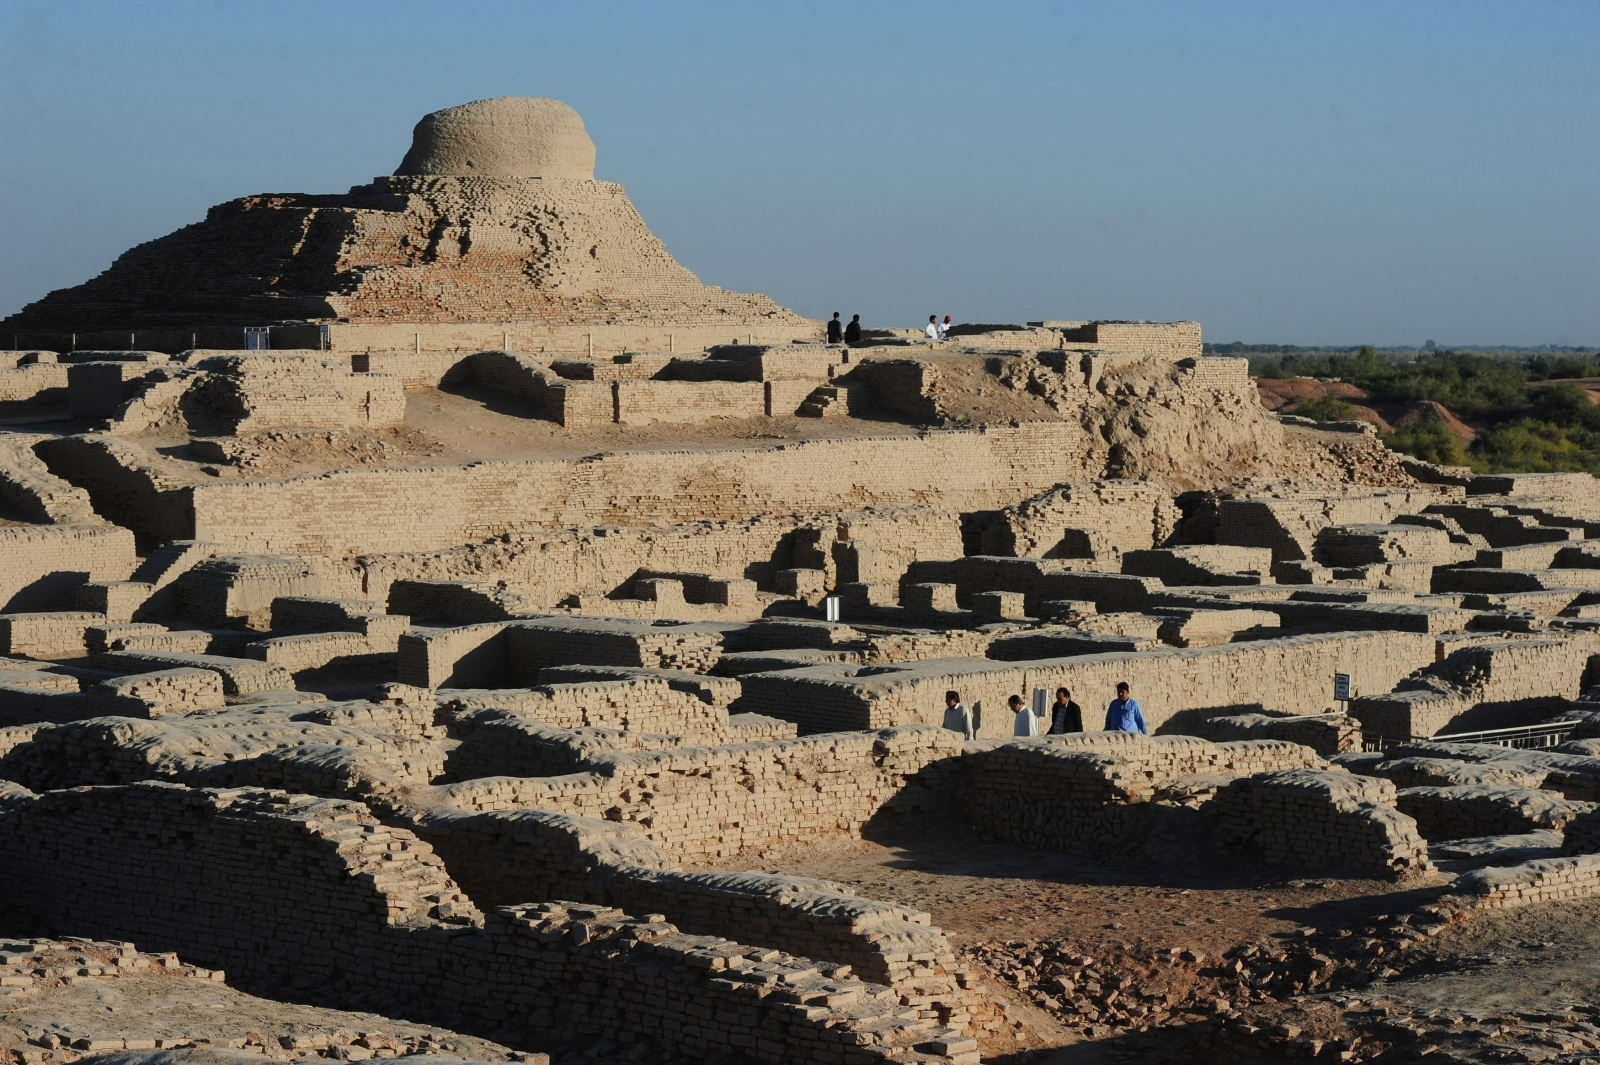 Mohenjo-daro, Indus Valley